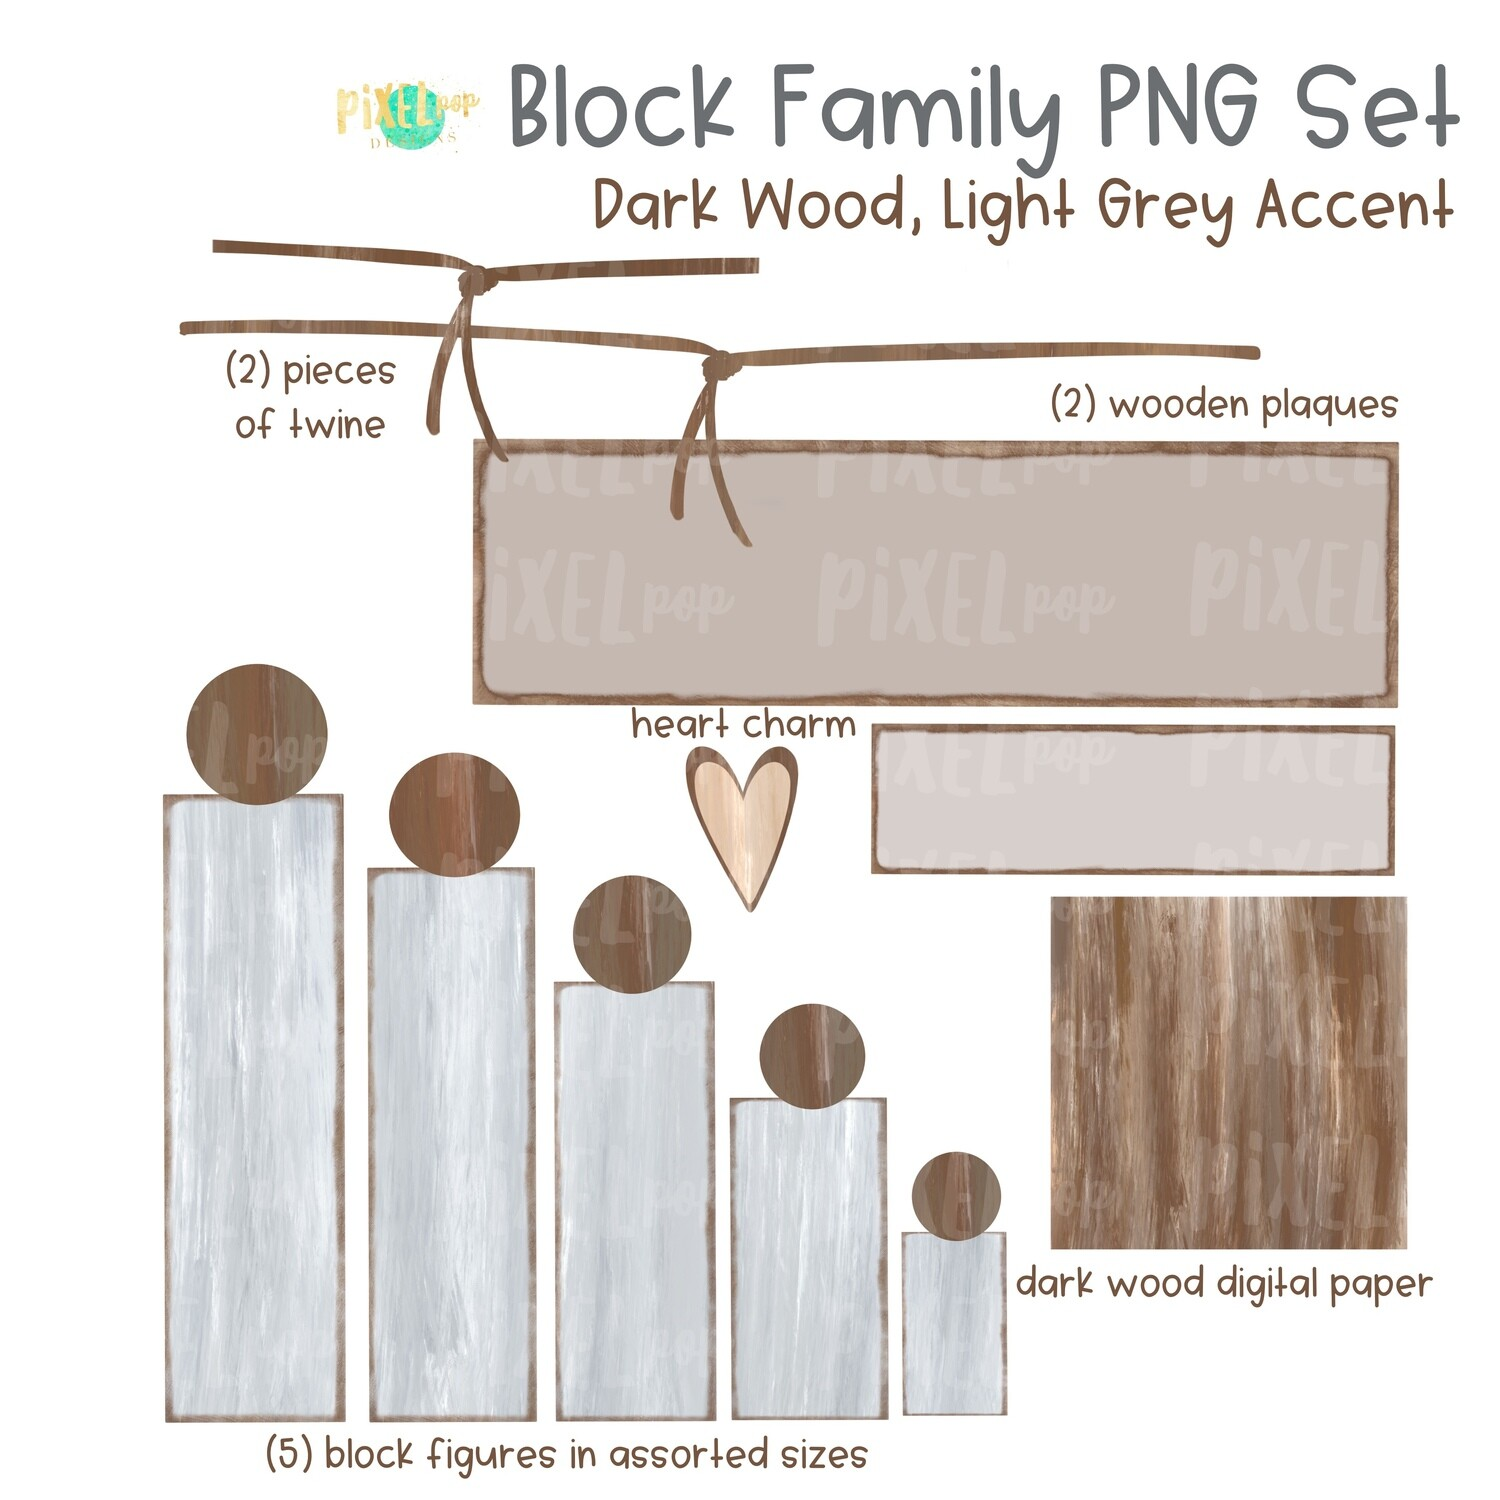 Wooden Block Family PNG Set Dark Wood Light Grey Accents with Accessories | Family Portrait Art | Wooden Blocks | Family Design